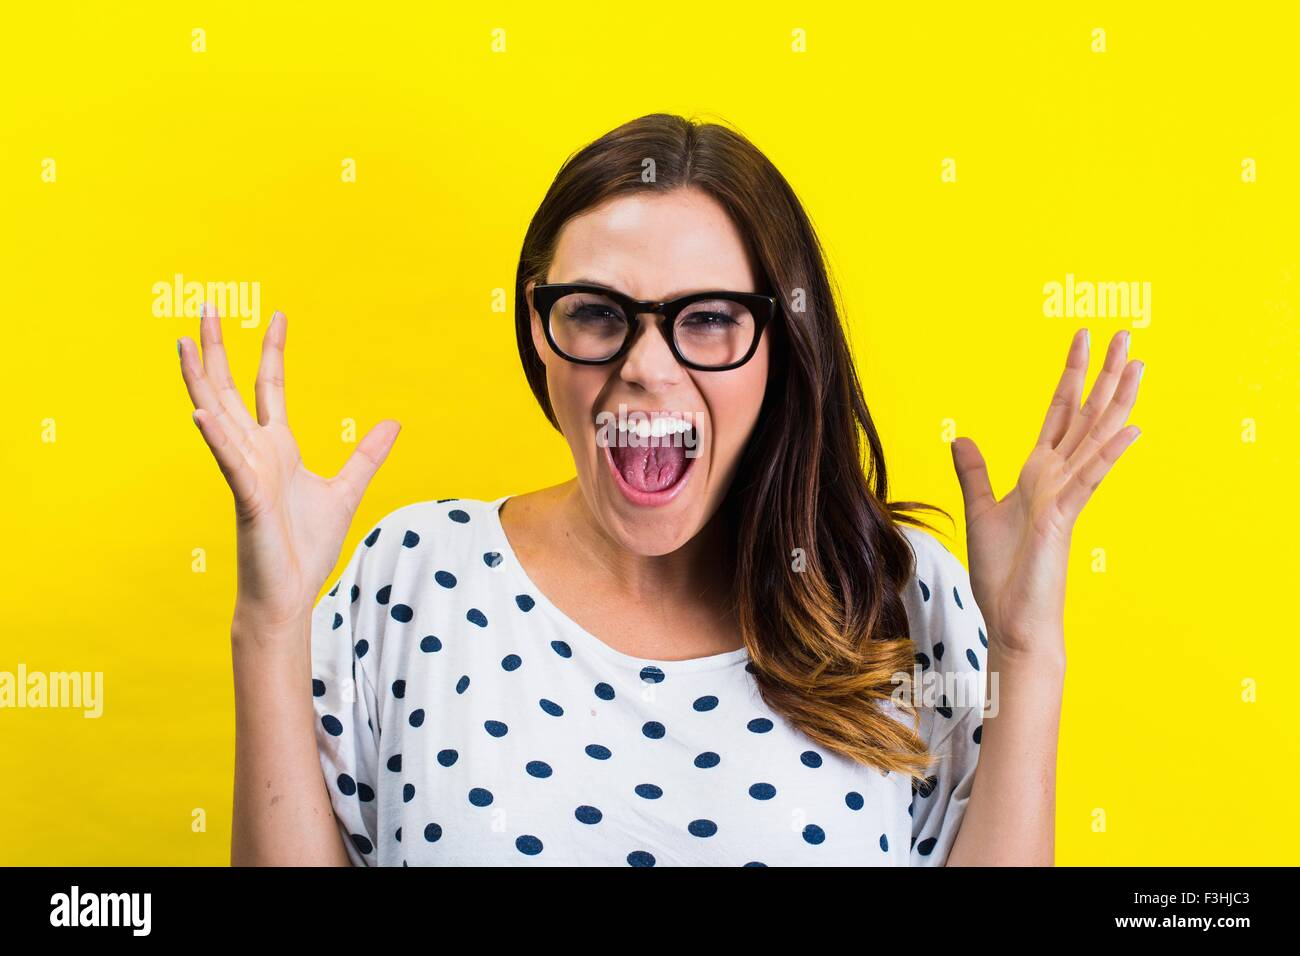 Portrait of young woman with eyeglasses, screaming - Stock Image